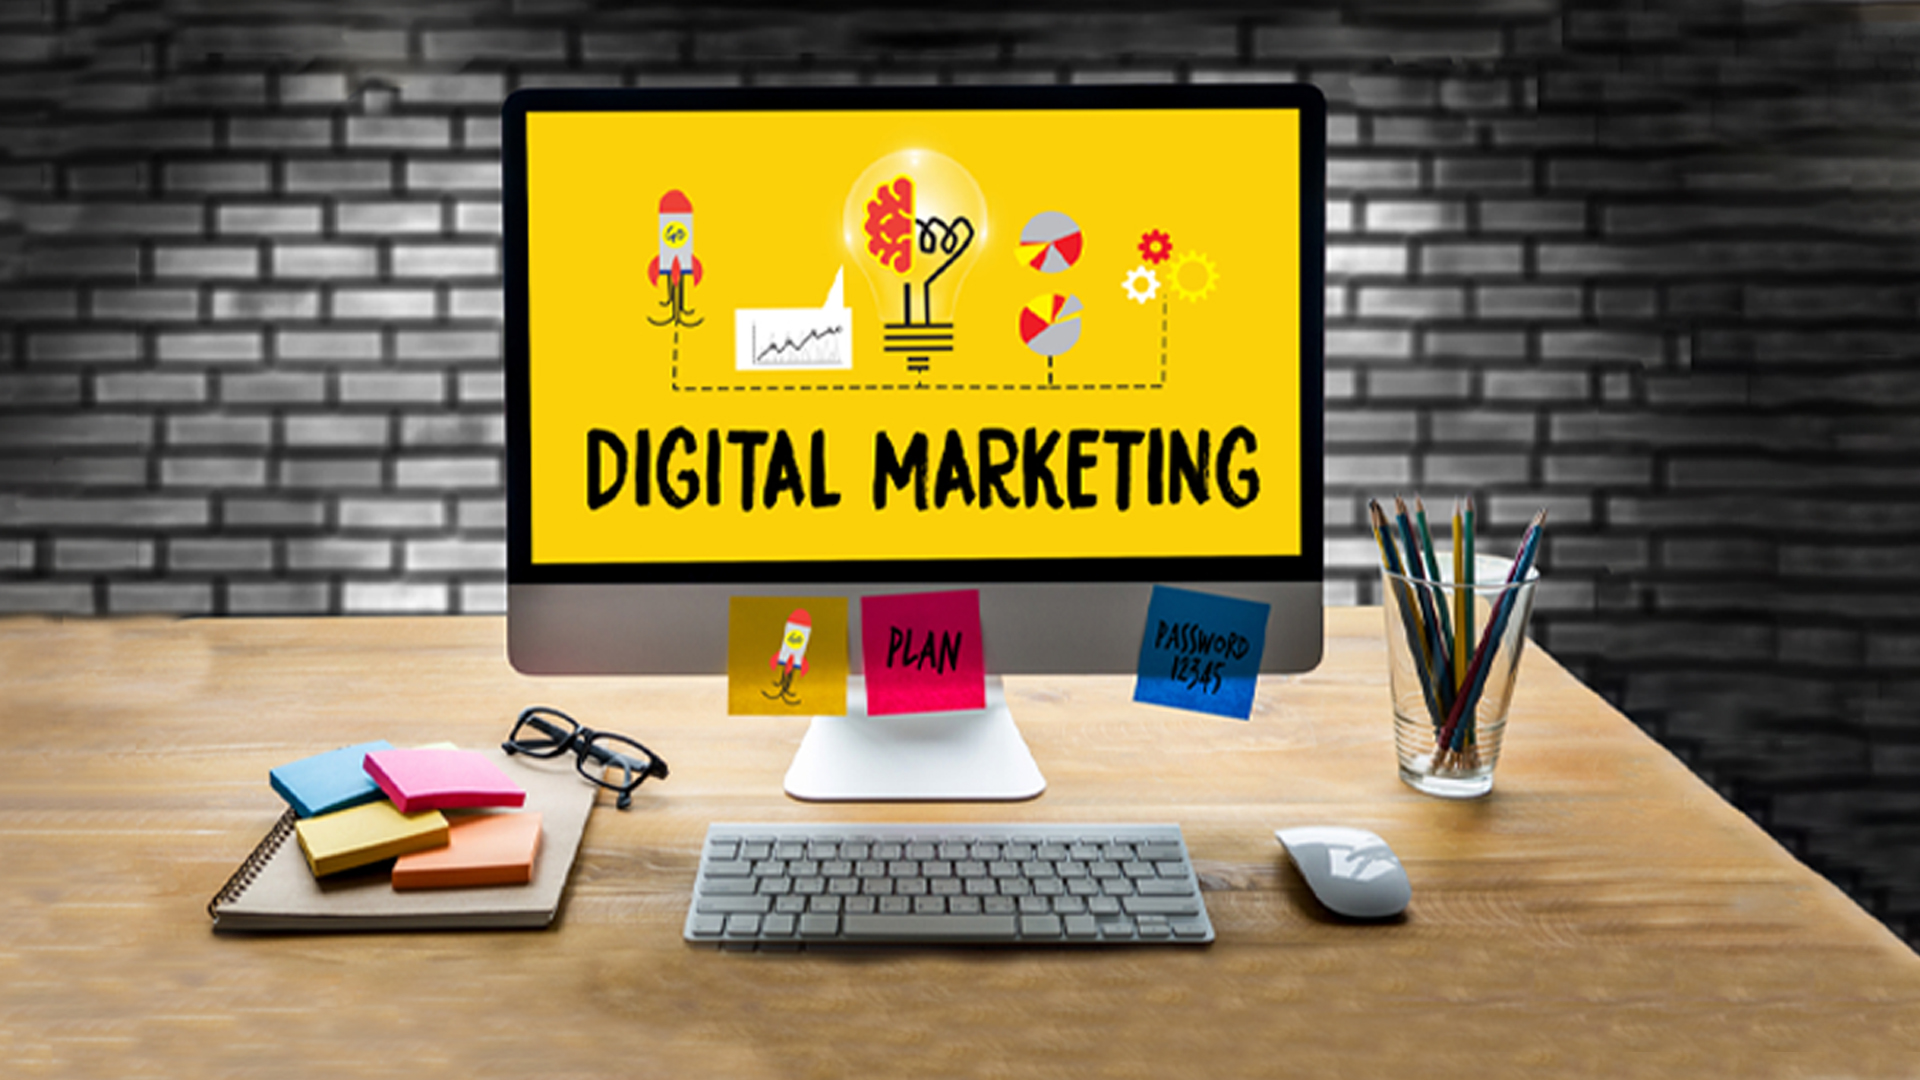 Digital Marketing Post Lockdown – Have You Revisited Your Strategy?